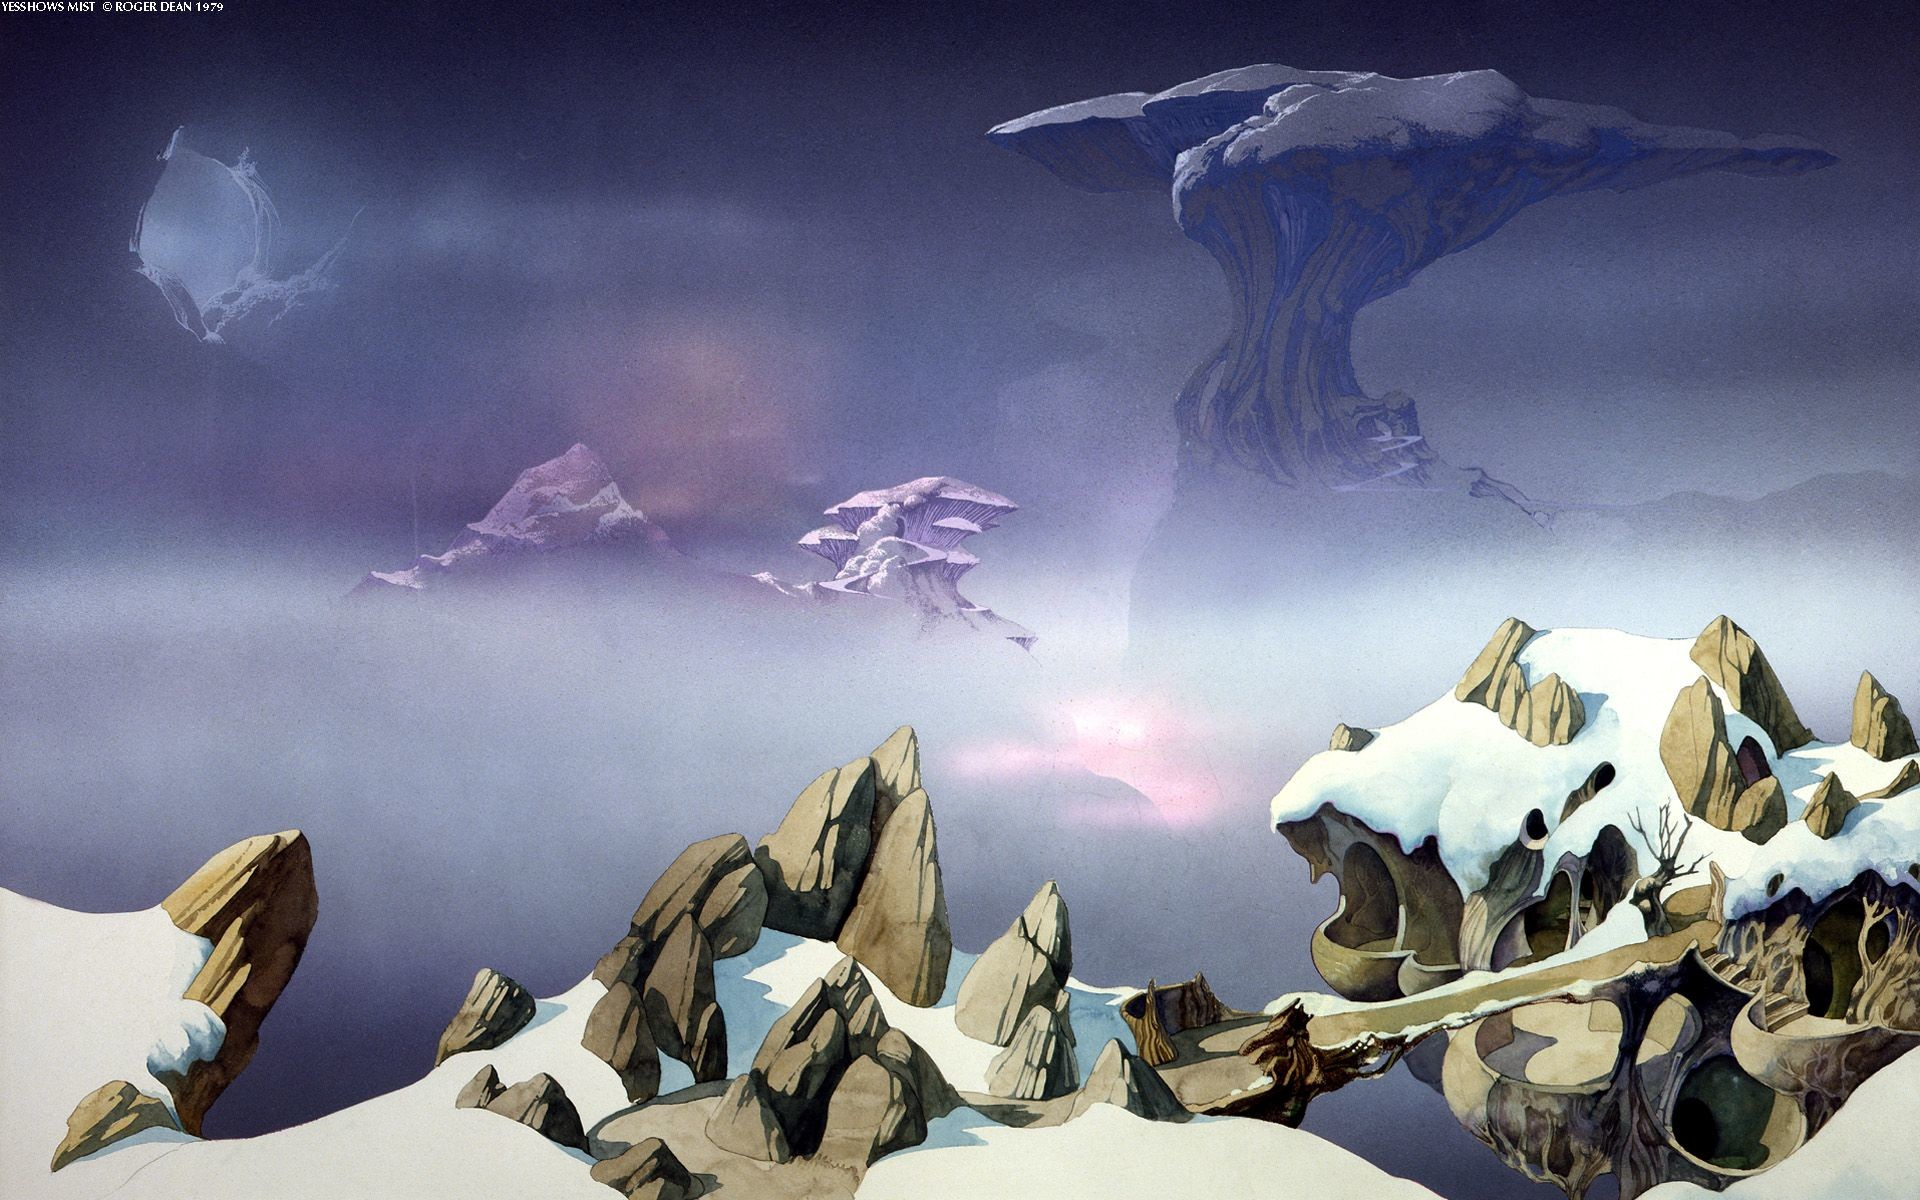 1920x1200 Yesshows Mist - Roger Dean | The Beauty of Art Objects 1 .